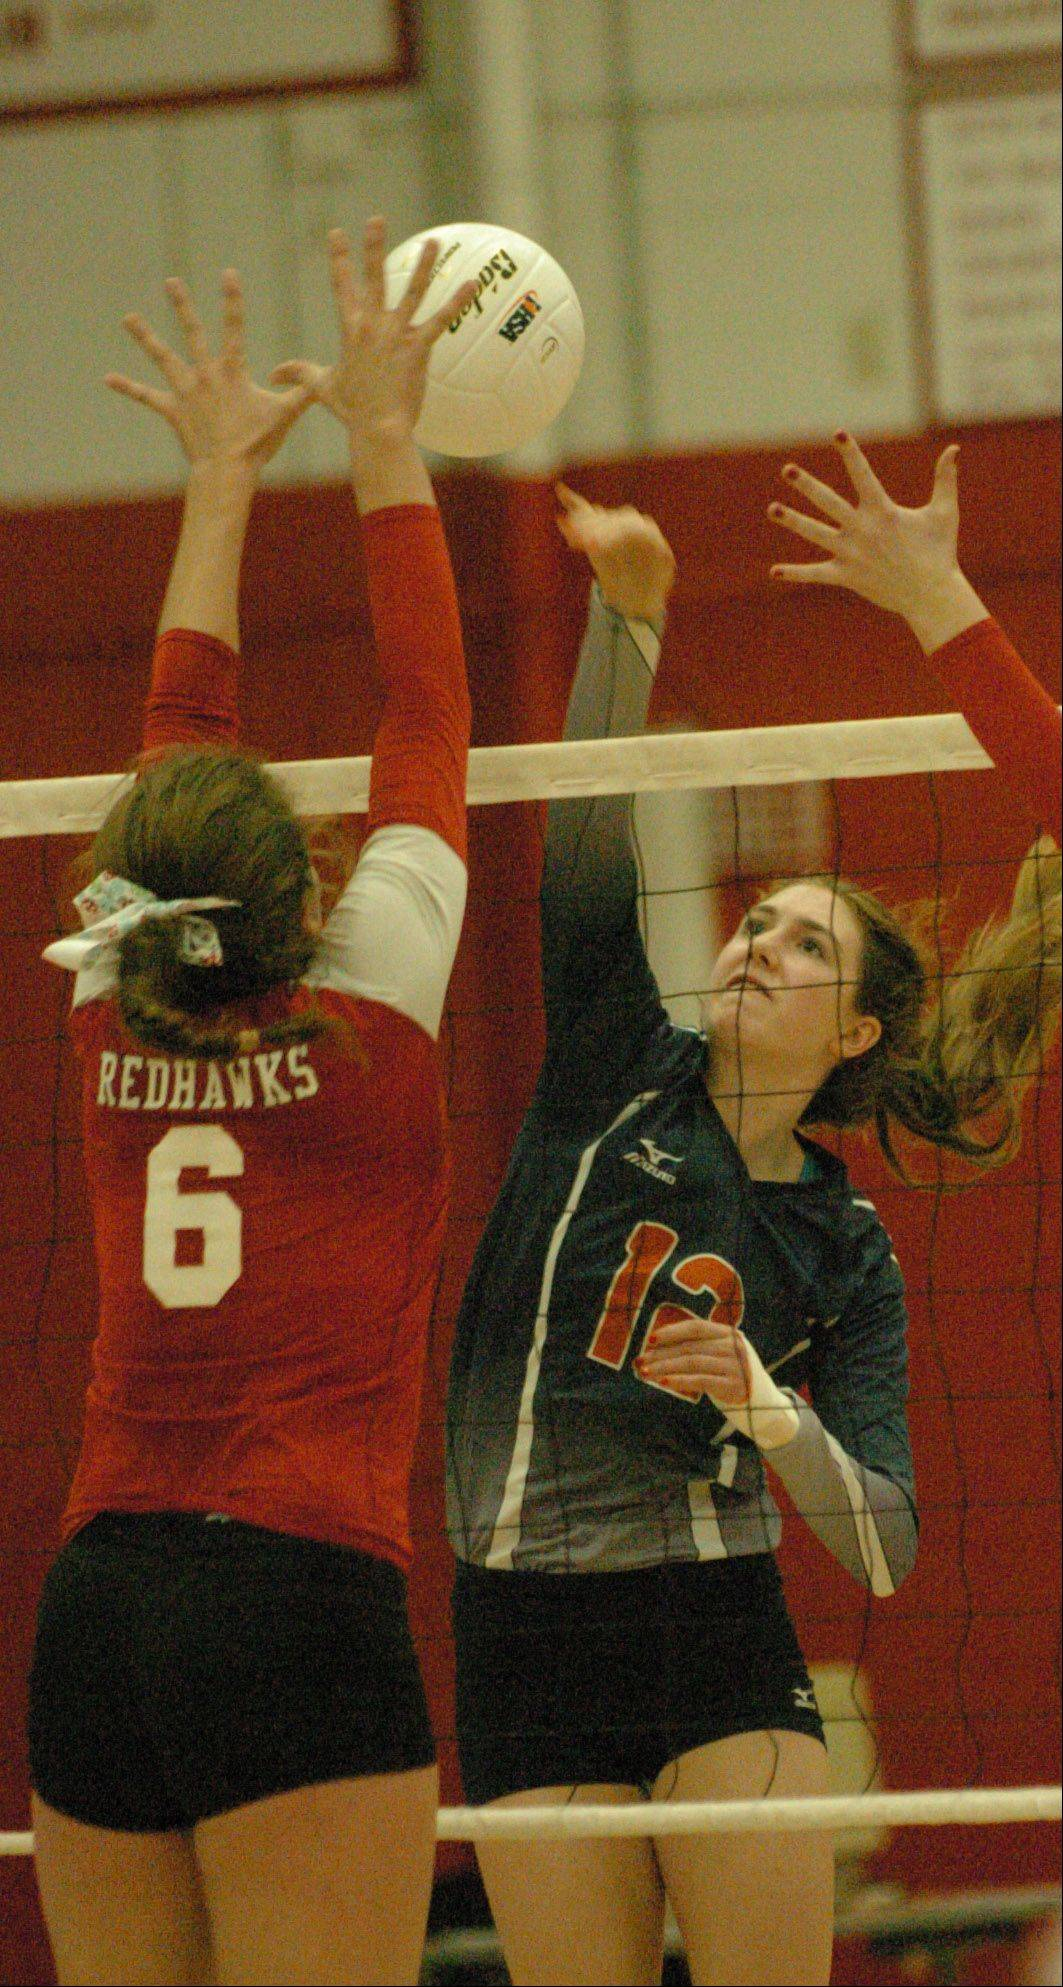 Alysia Baznik of Naperville Central goes up for a block while Becky Welch of Naperville Noth hits it. This took place during the Naperville Central vs. Naperville North girls volleyball at Naperville Central Tuesday.